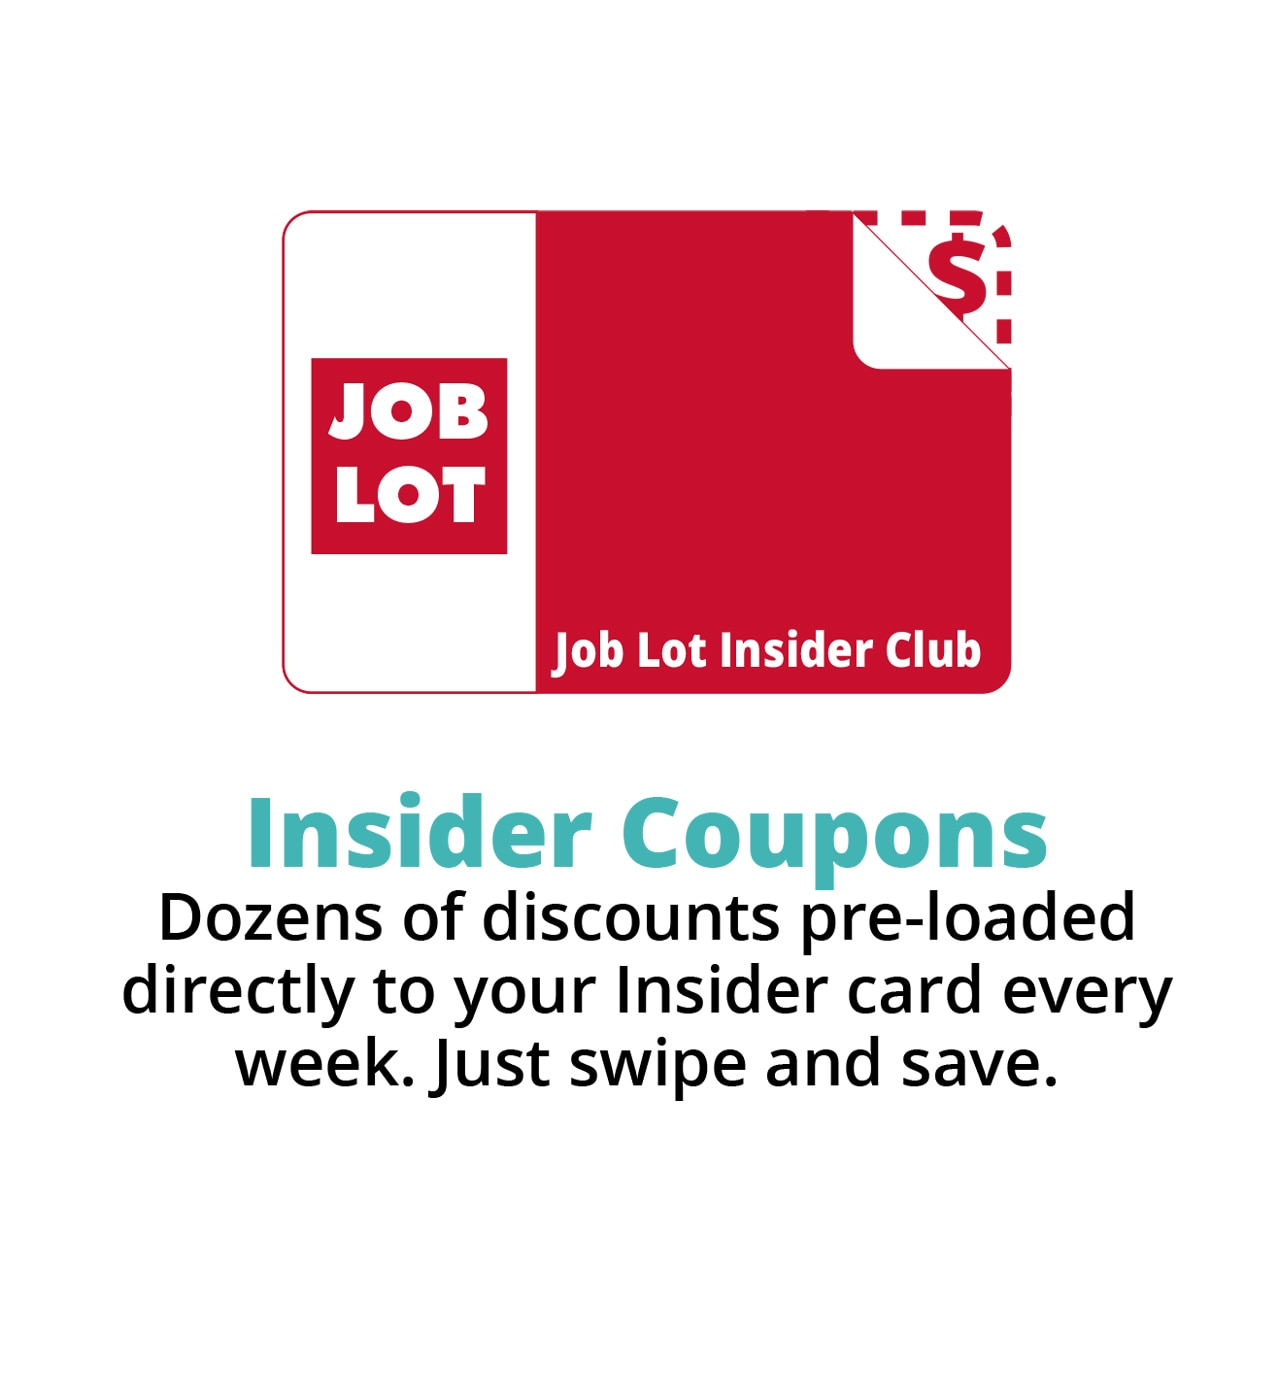 photo about Ocean State Job Lot Coupons Printable identified as Insider Club